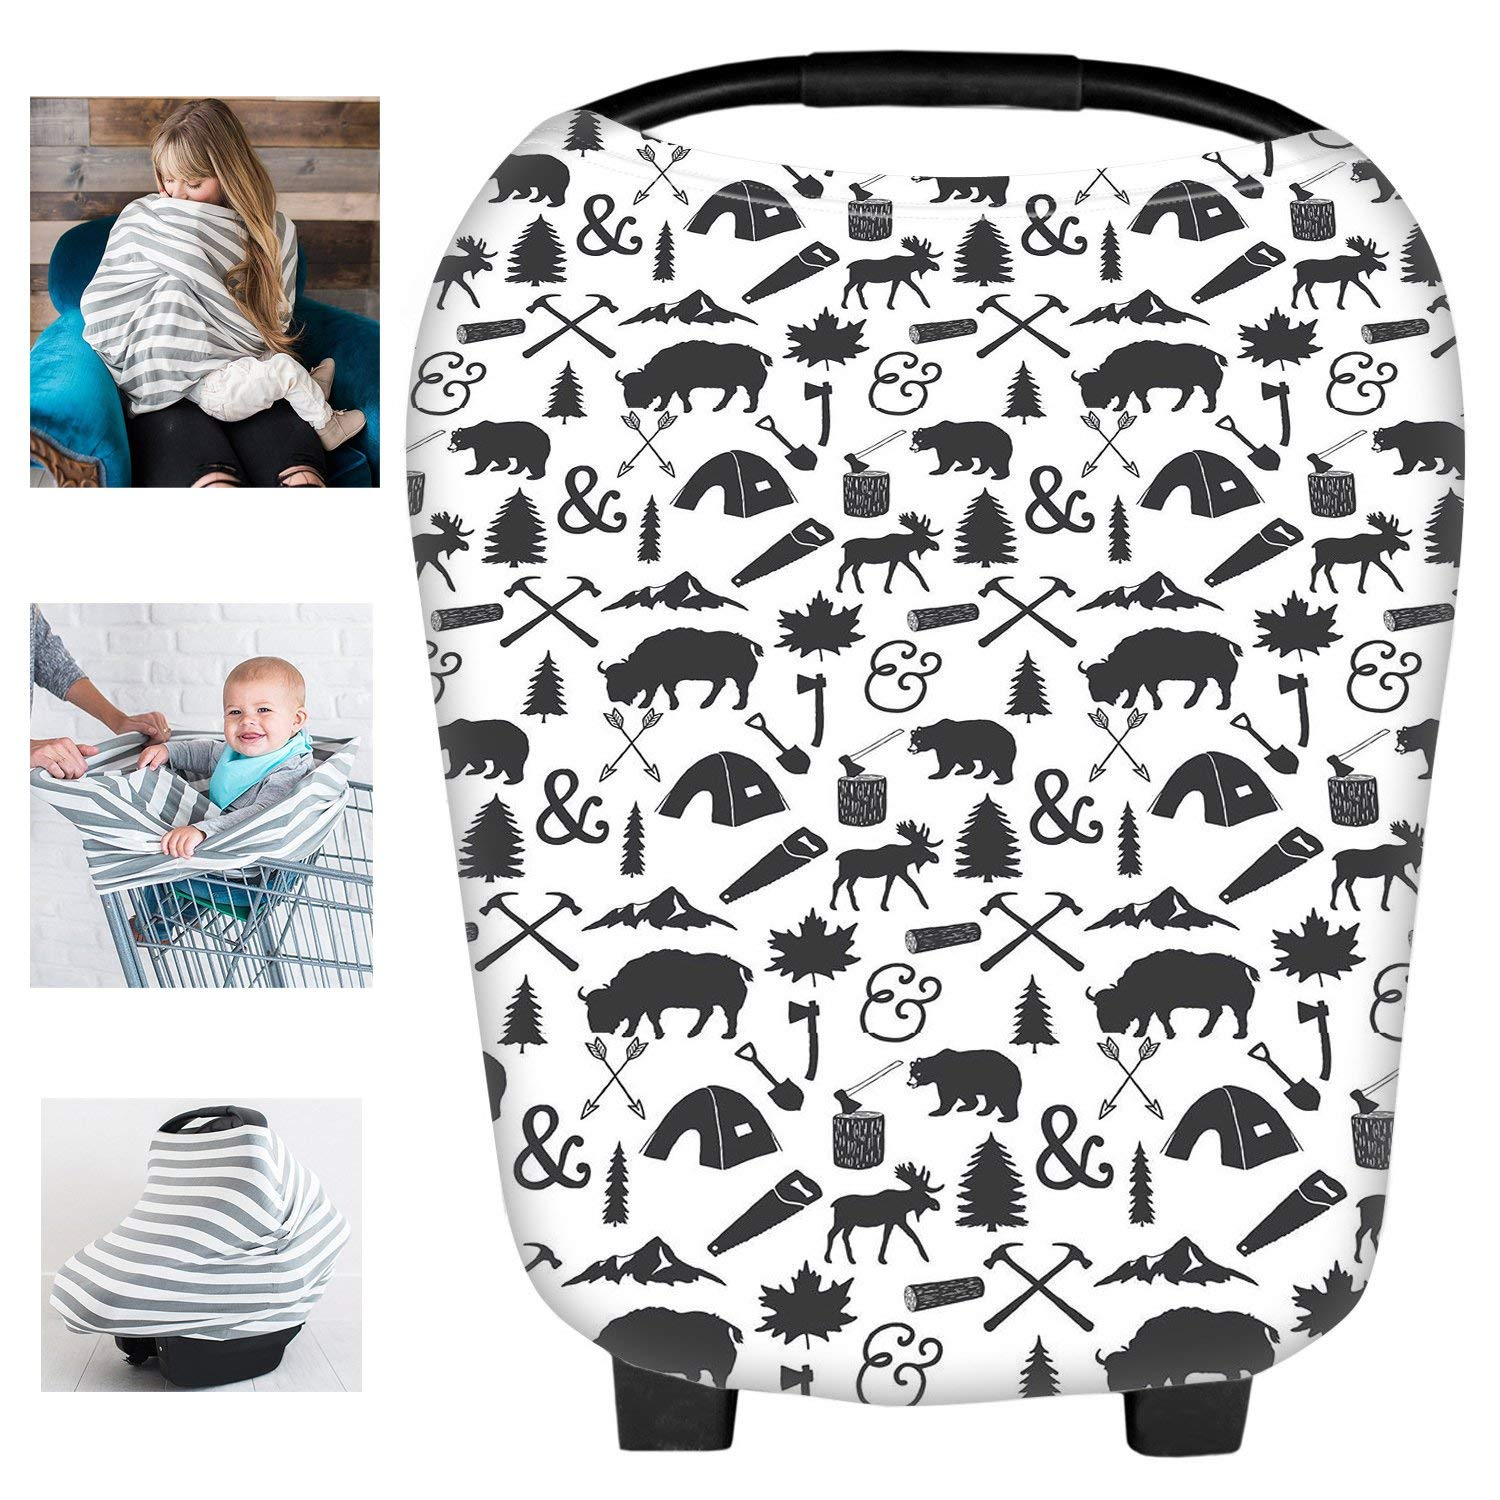 Multi-Use Organic Cotton Lycra Nursing Breastfeeding Cover Baby Car Set Cover Canopy Shopping Cart Cover Swaddle Blanket for Infants Newborns Toddlers Shower Gift Busy Mom